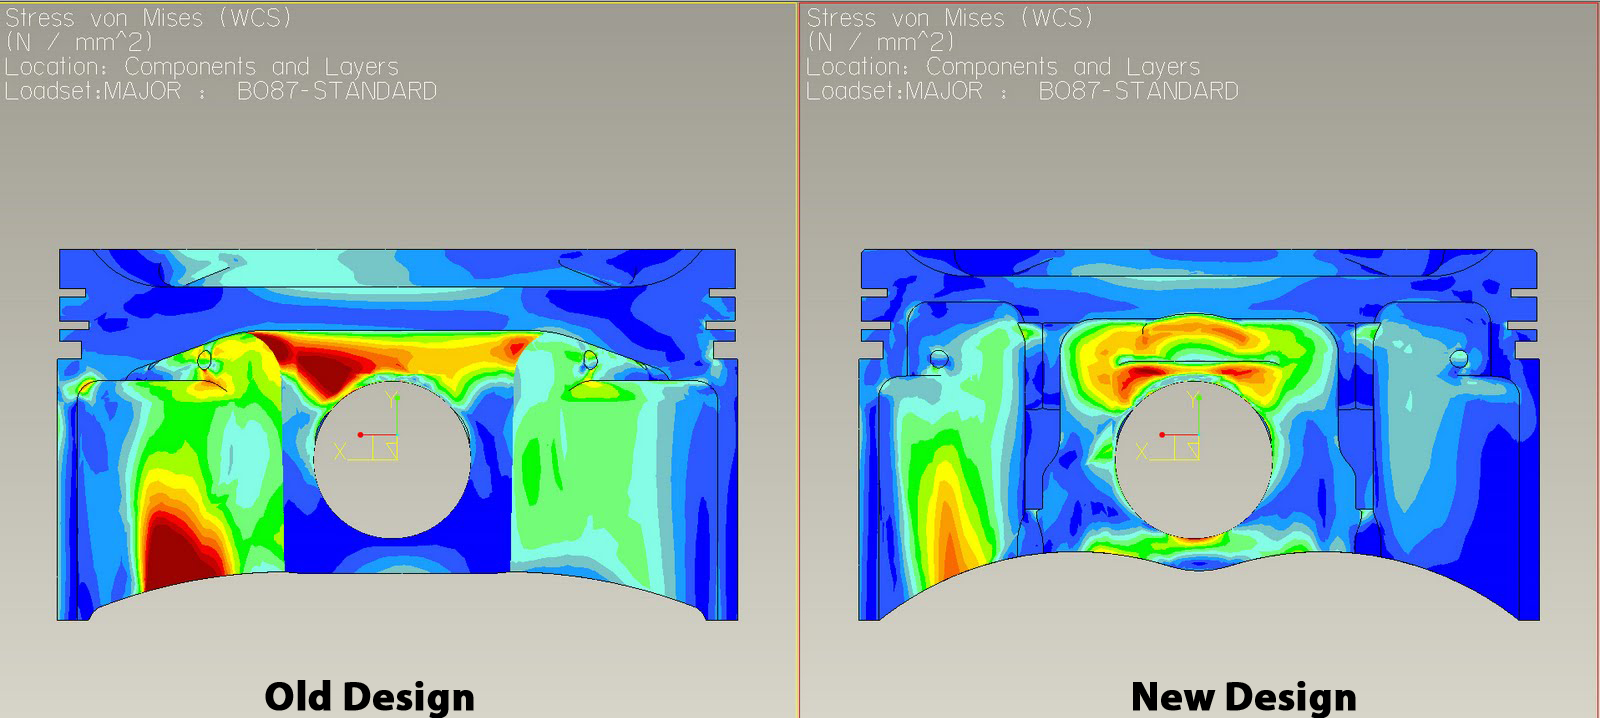 fea piston • trellebor engineers compared test data and fea for many common plastics and elastomers • results show fea is a good way to predict seal behavior finite-element analysis (fea) has come of.